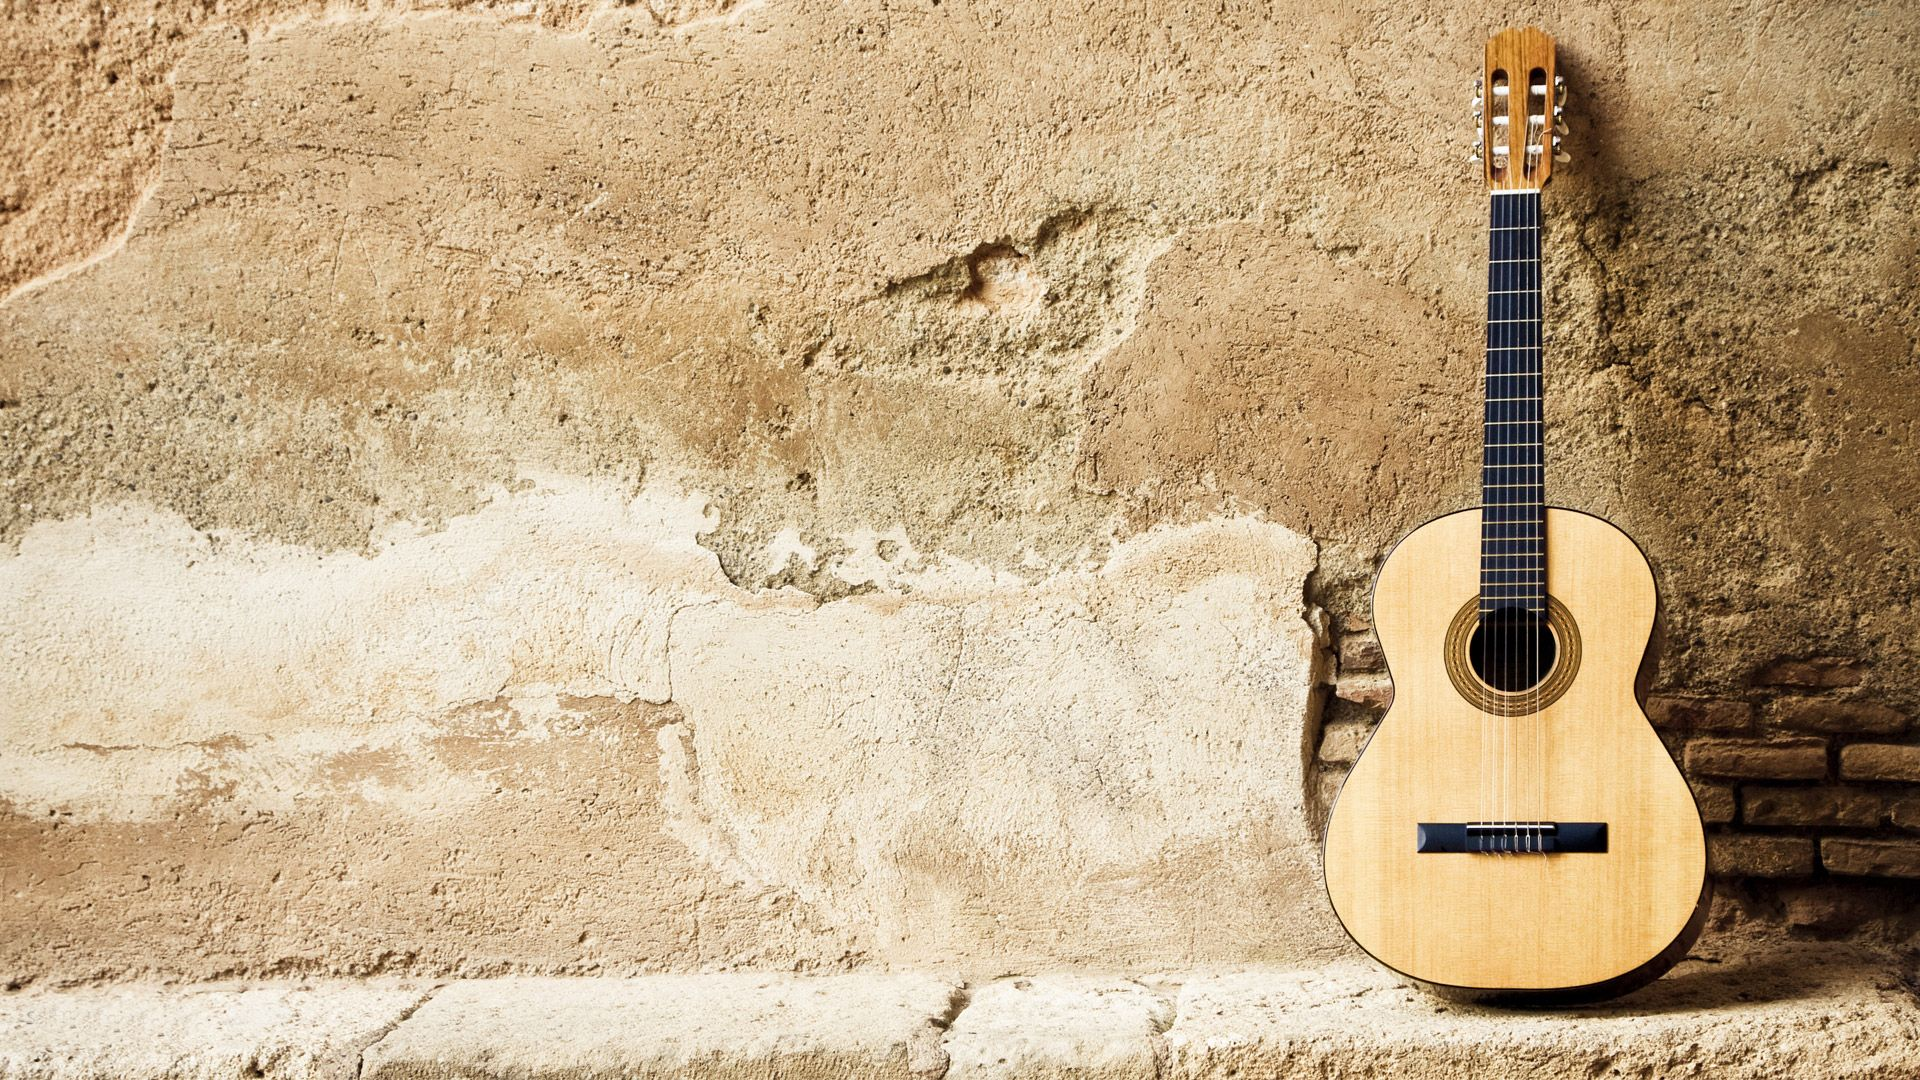 Guitar Wallpapers High Quality Download Free Online Guitar